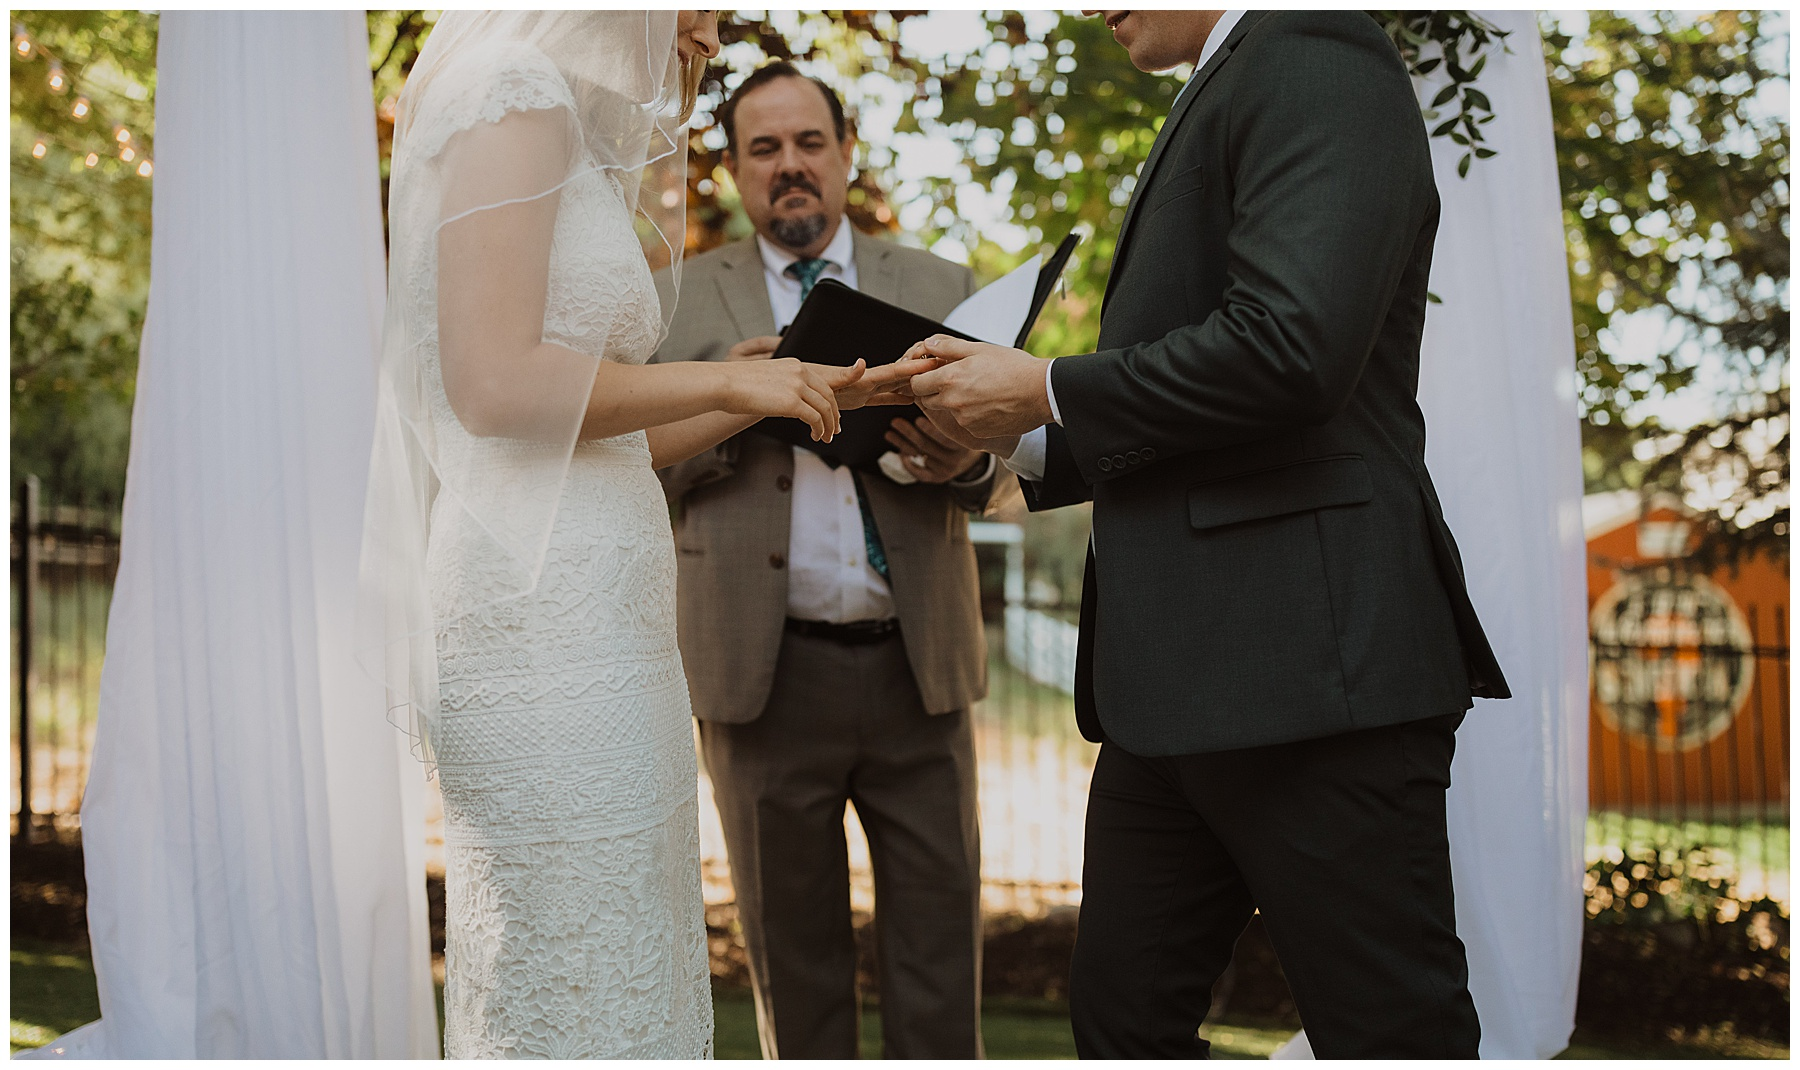 Bride and groom exchanging rings at a backyard wedding ceremony in the summer